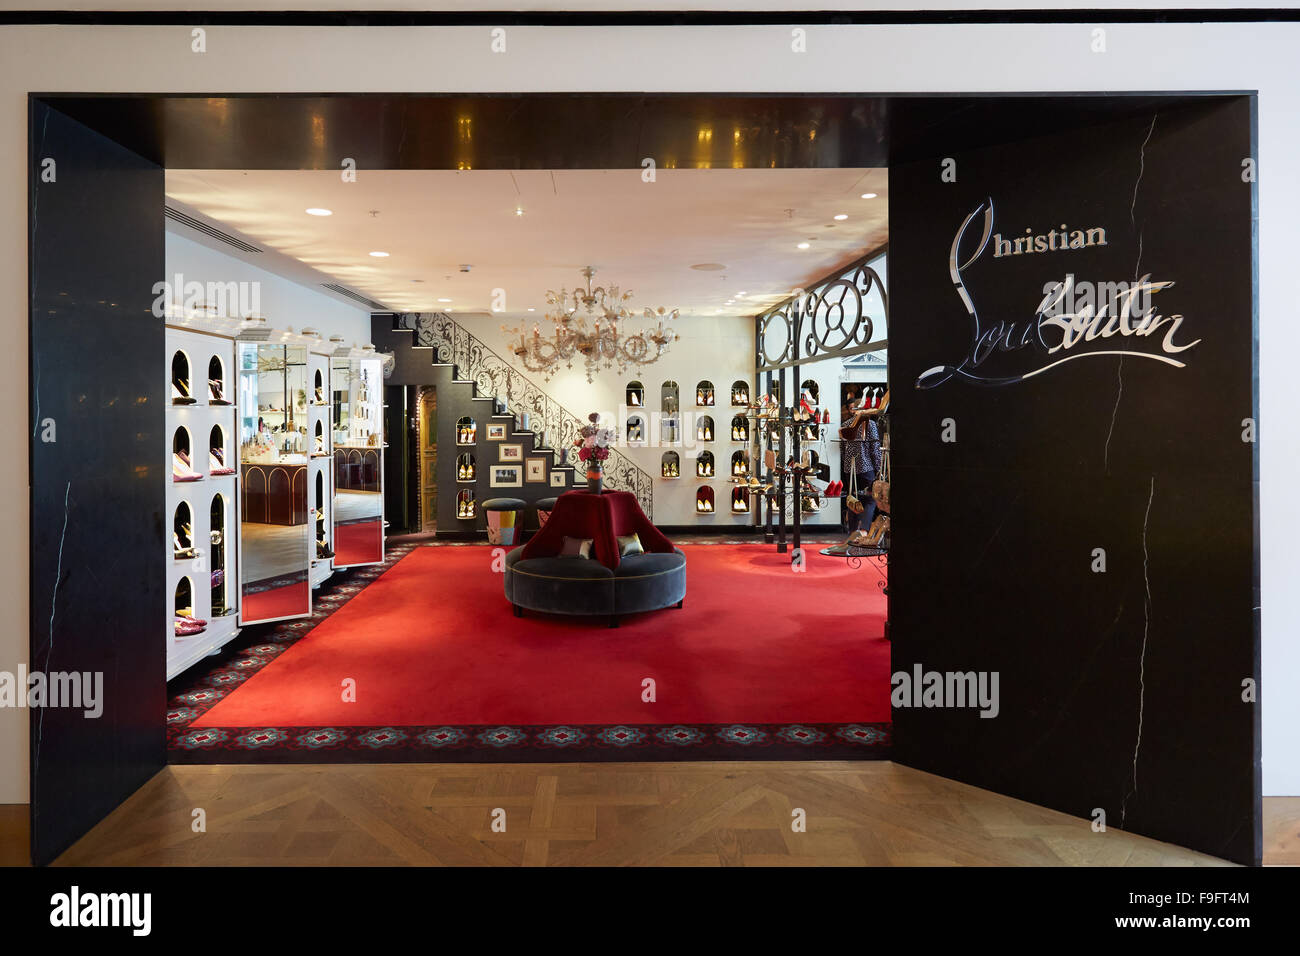 590d1b7e572 Christian Louboutin Stock Photos & Christian Louboutin Stock Images ...